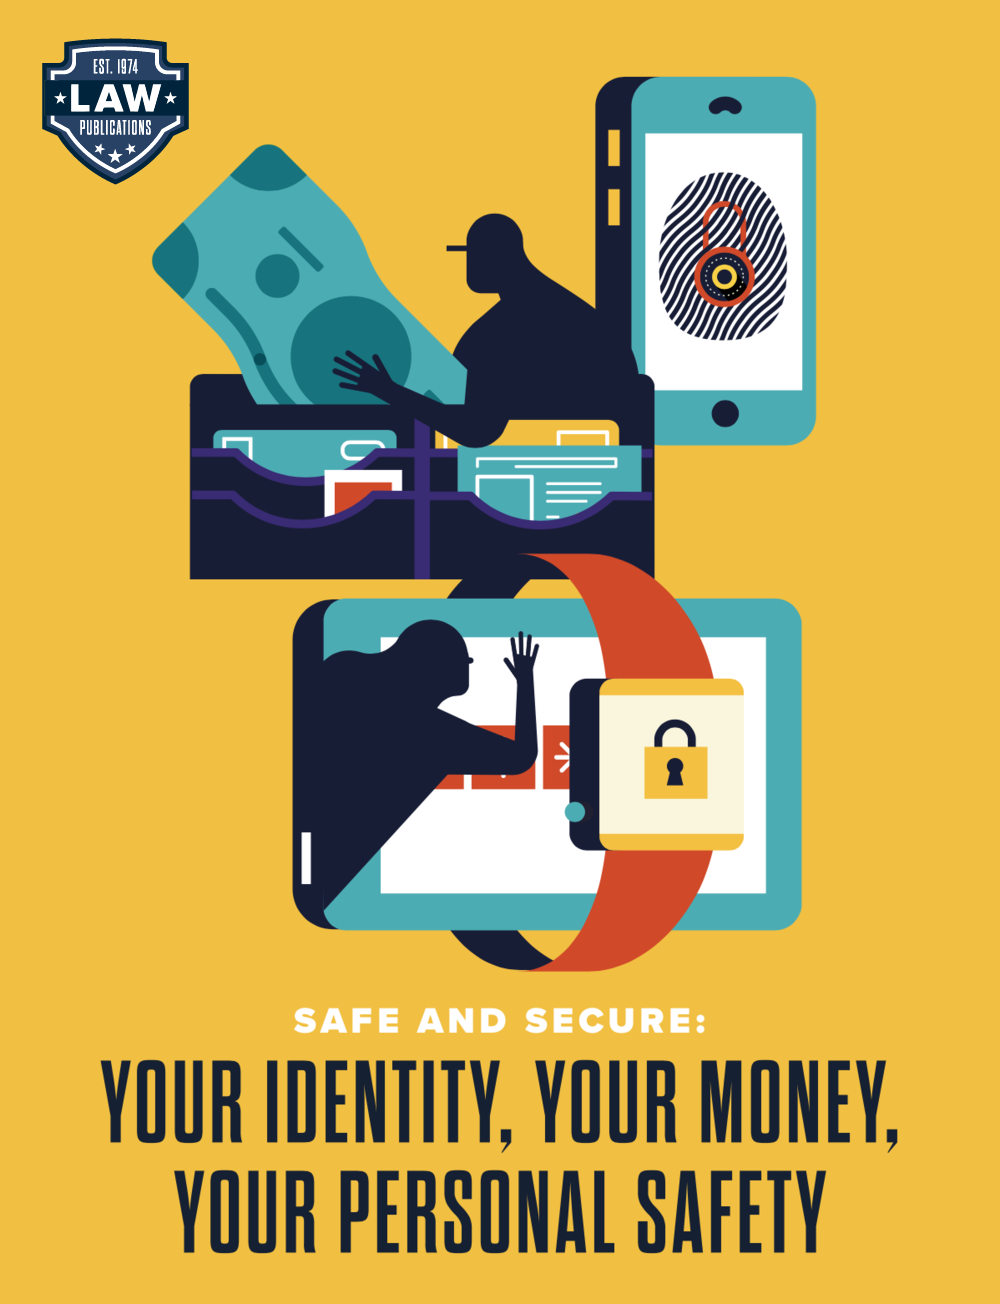 Safe and Secure: Your Identity, Your Money, Your Personal Safety